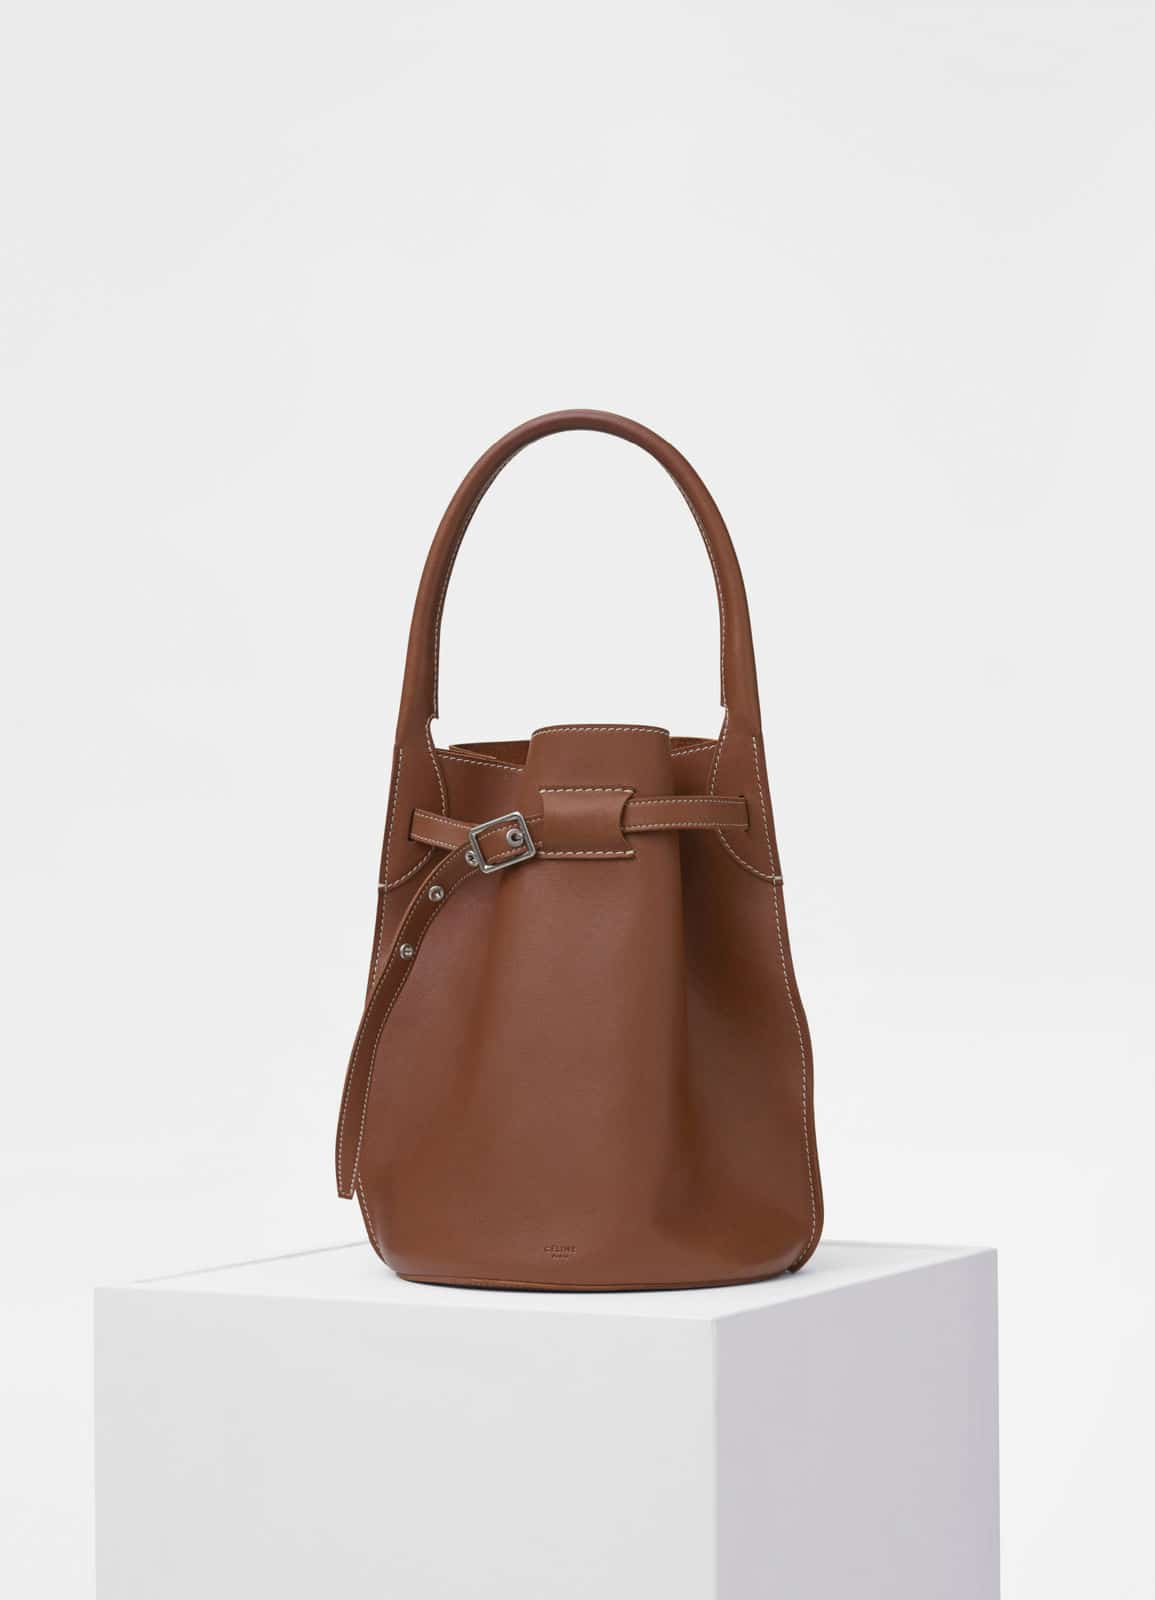 edc804390783 Celine Spring 2018 Bag Collection Featuring the Big Bucket